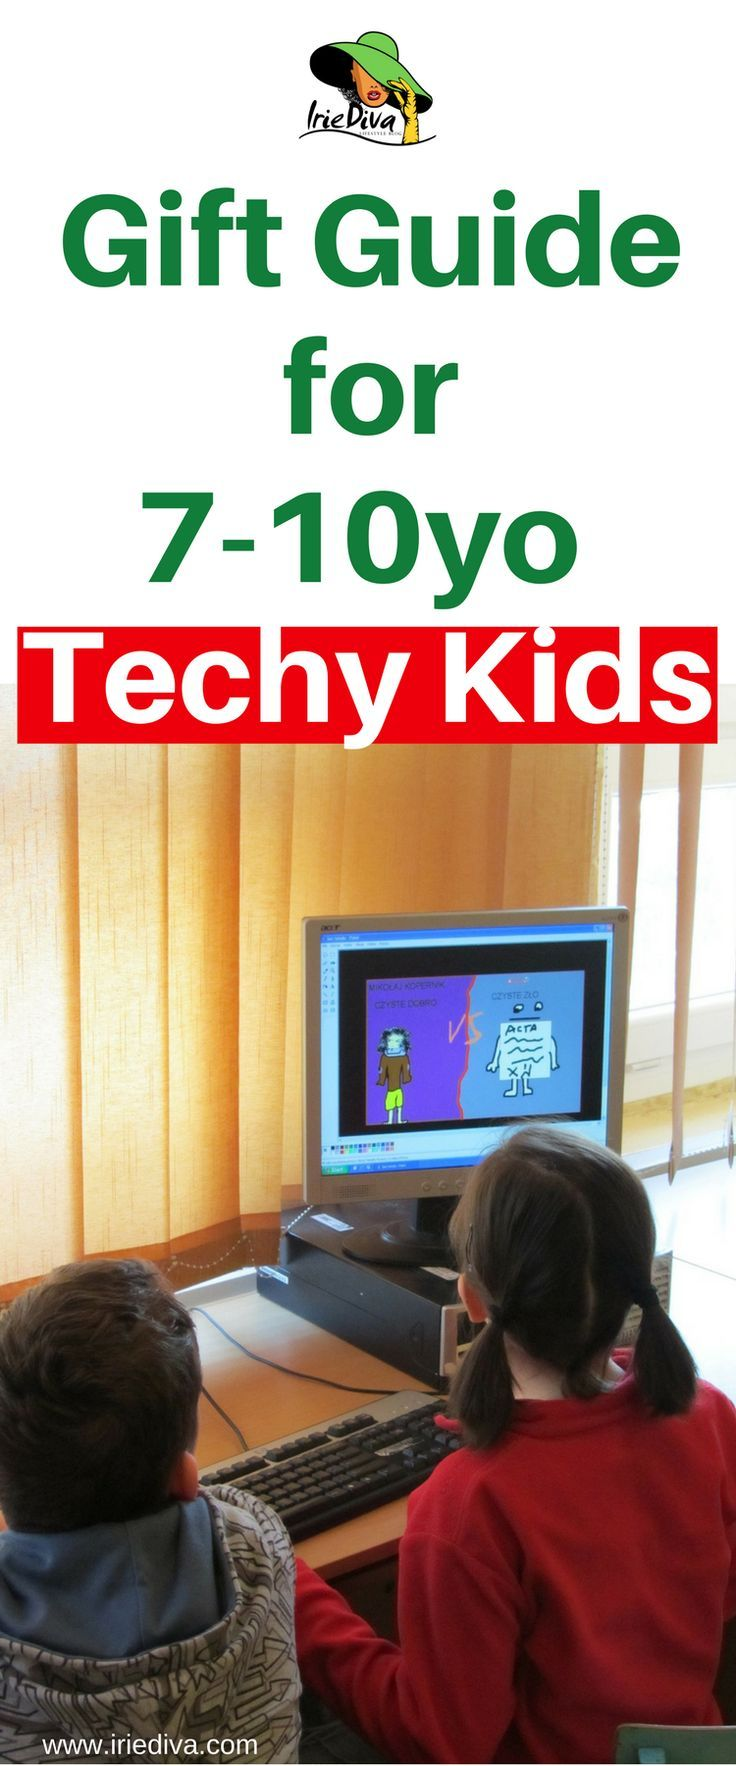 Gift guide for a 7-10 year old techy kids! These gift ideas will endear you to the big kid in your life this holiday season. These are the latest in tech toys like beginner drone, VR headsets and latest generation racing cars the whole family will love!